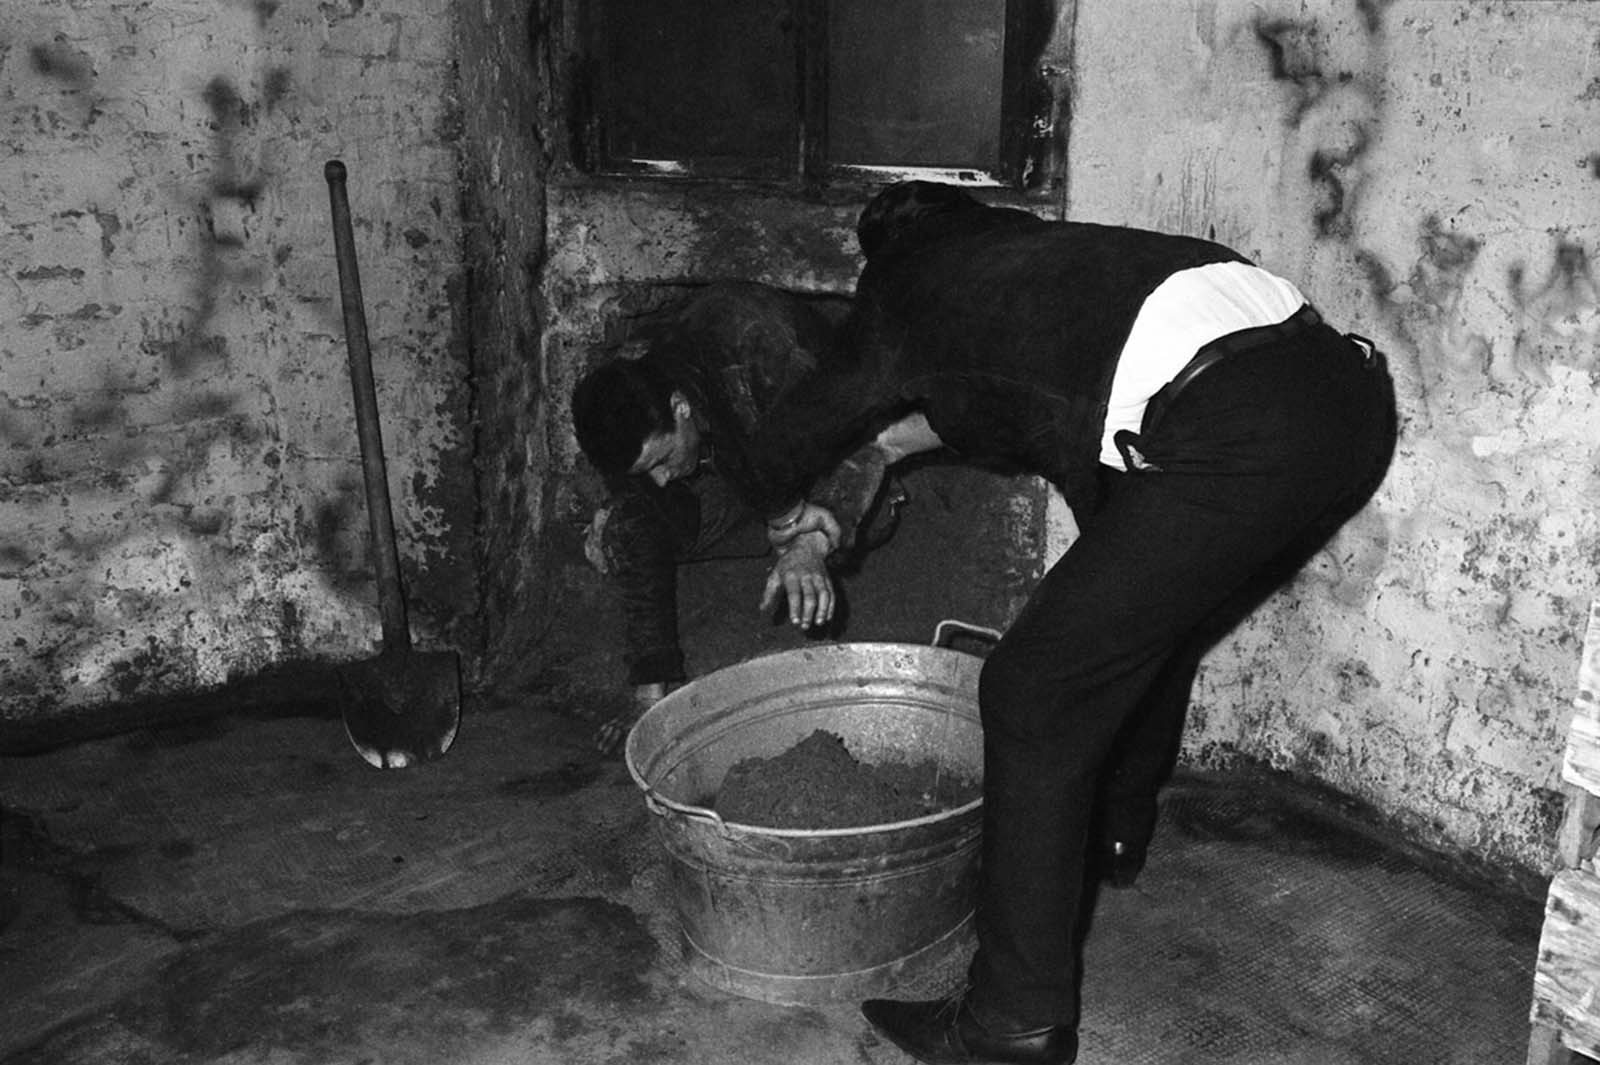 One of six West Berliners who dug a 20-inch-wide tunnel under a border street to East Berlin crawls out sometime over the weekend of June 8–10, 1962. Sixteen East Berliners, relatives of the diggers, came through the tunnel dragging an infant behind them in a wash basin. The tunnel was believed to have been discovered in early June 12, a few hours after the 17 reached the West.